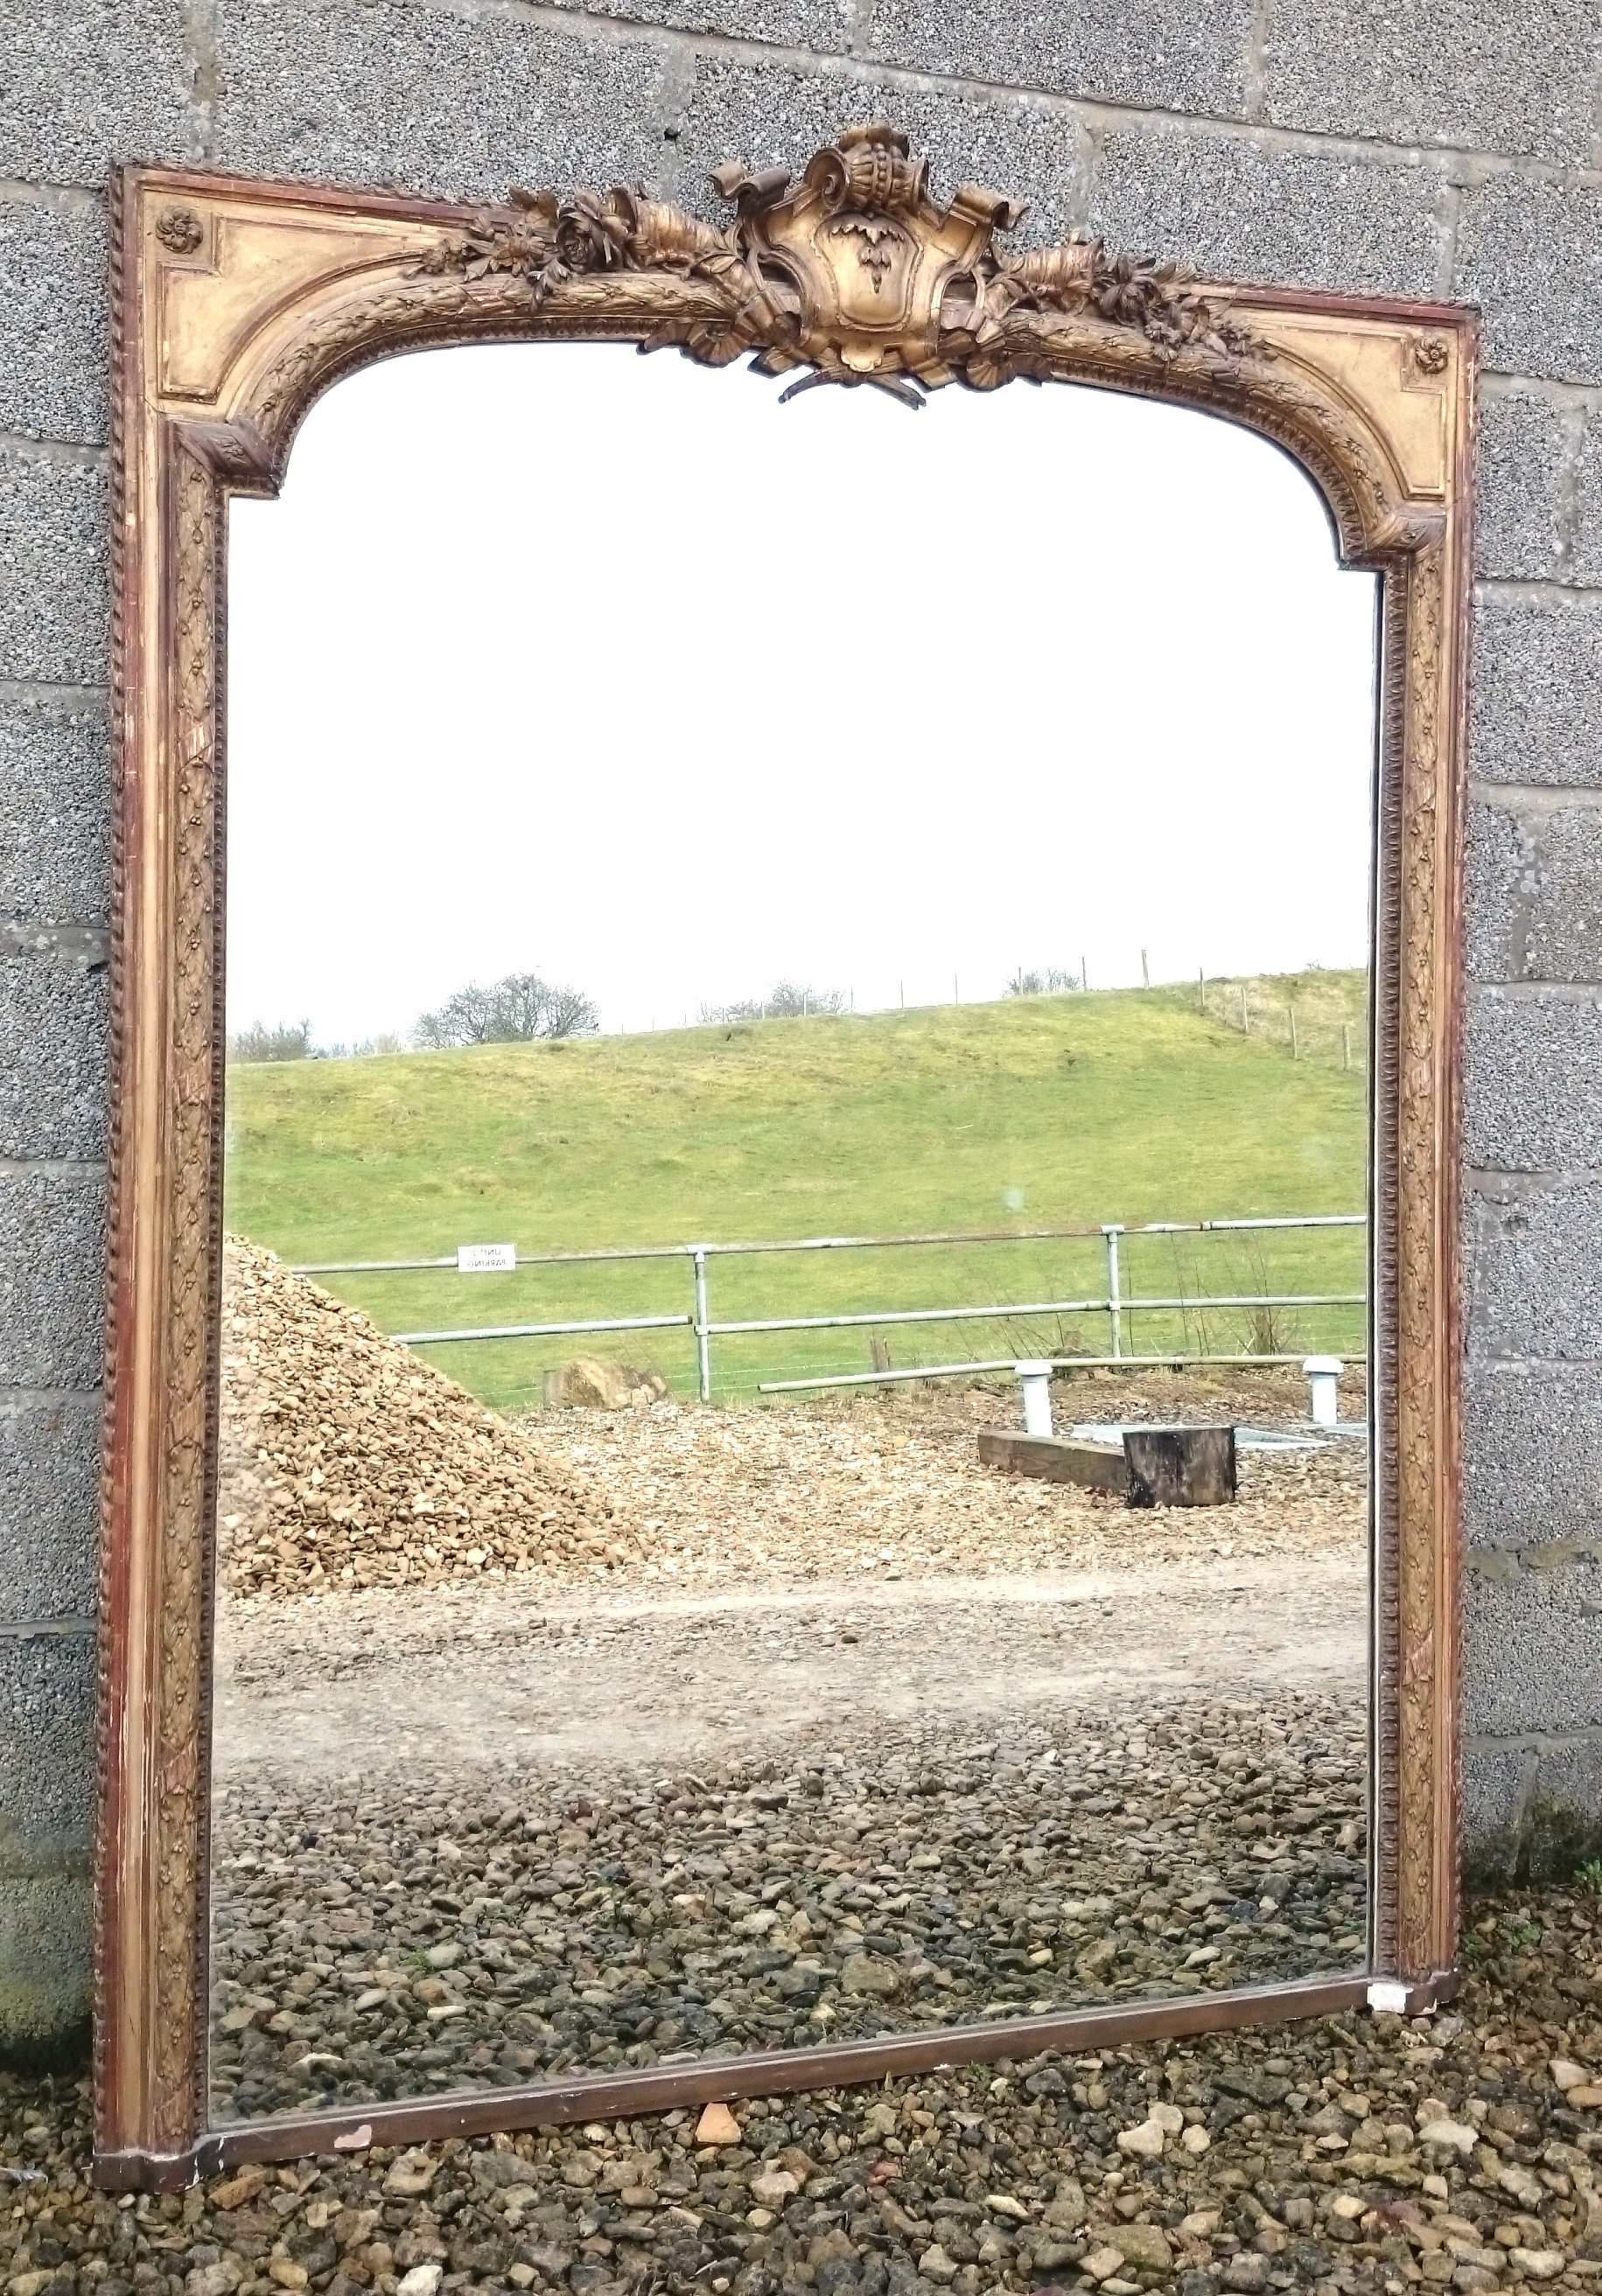 Large Antique Overmantle Mirror C 1850 United Kingdom From With Antique Overmantle Mirrors (Image 9 of 15)